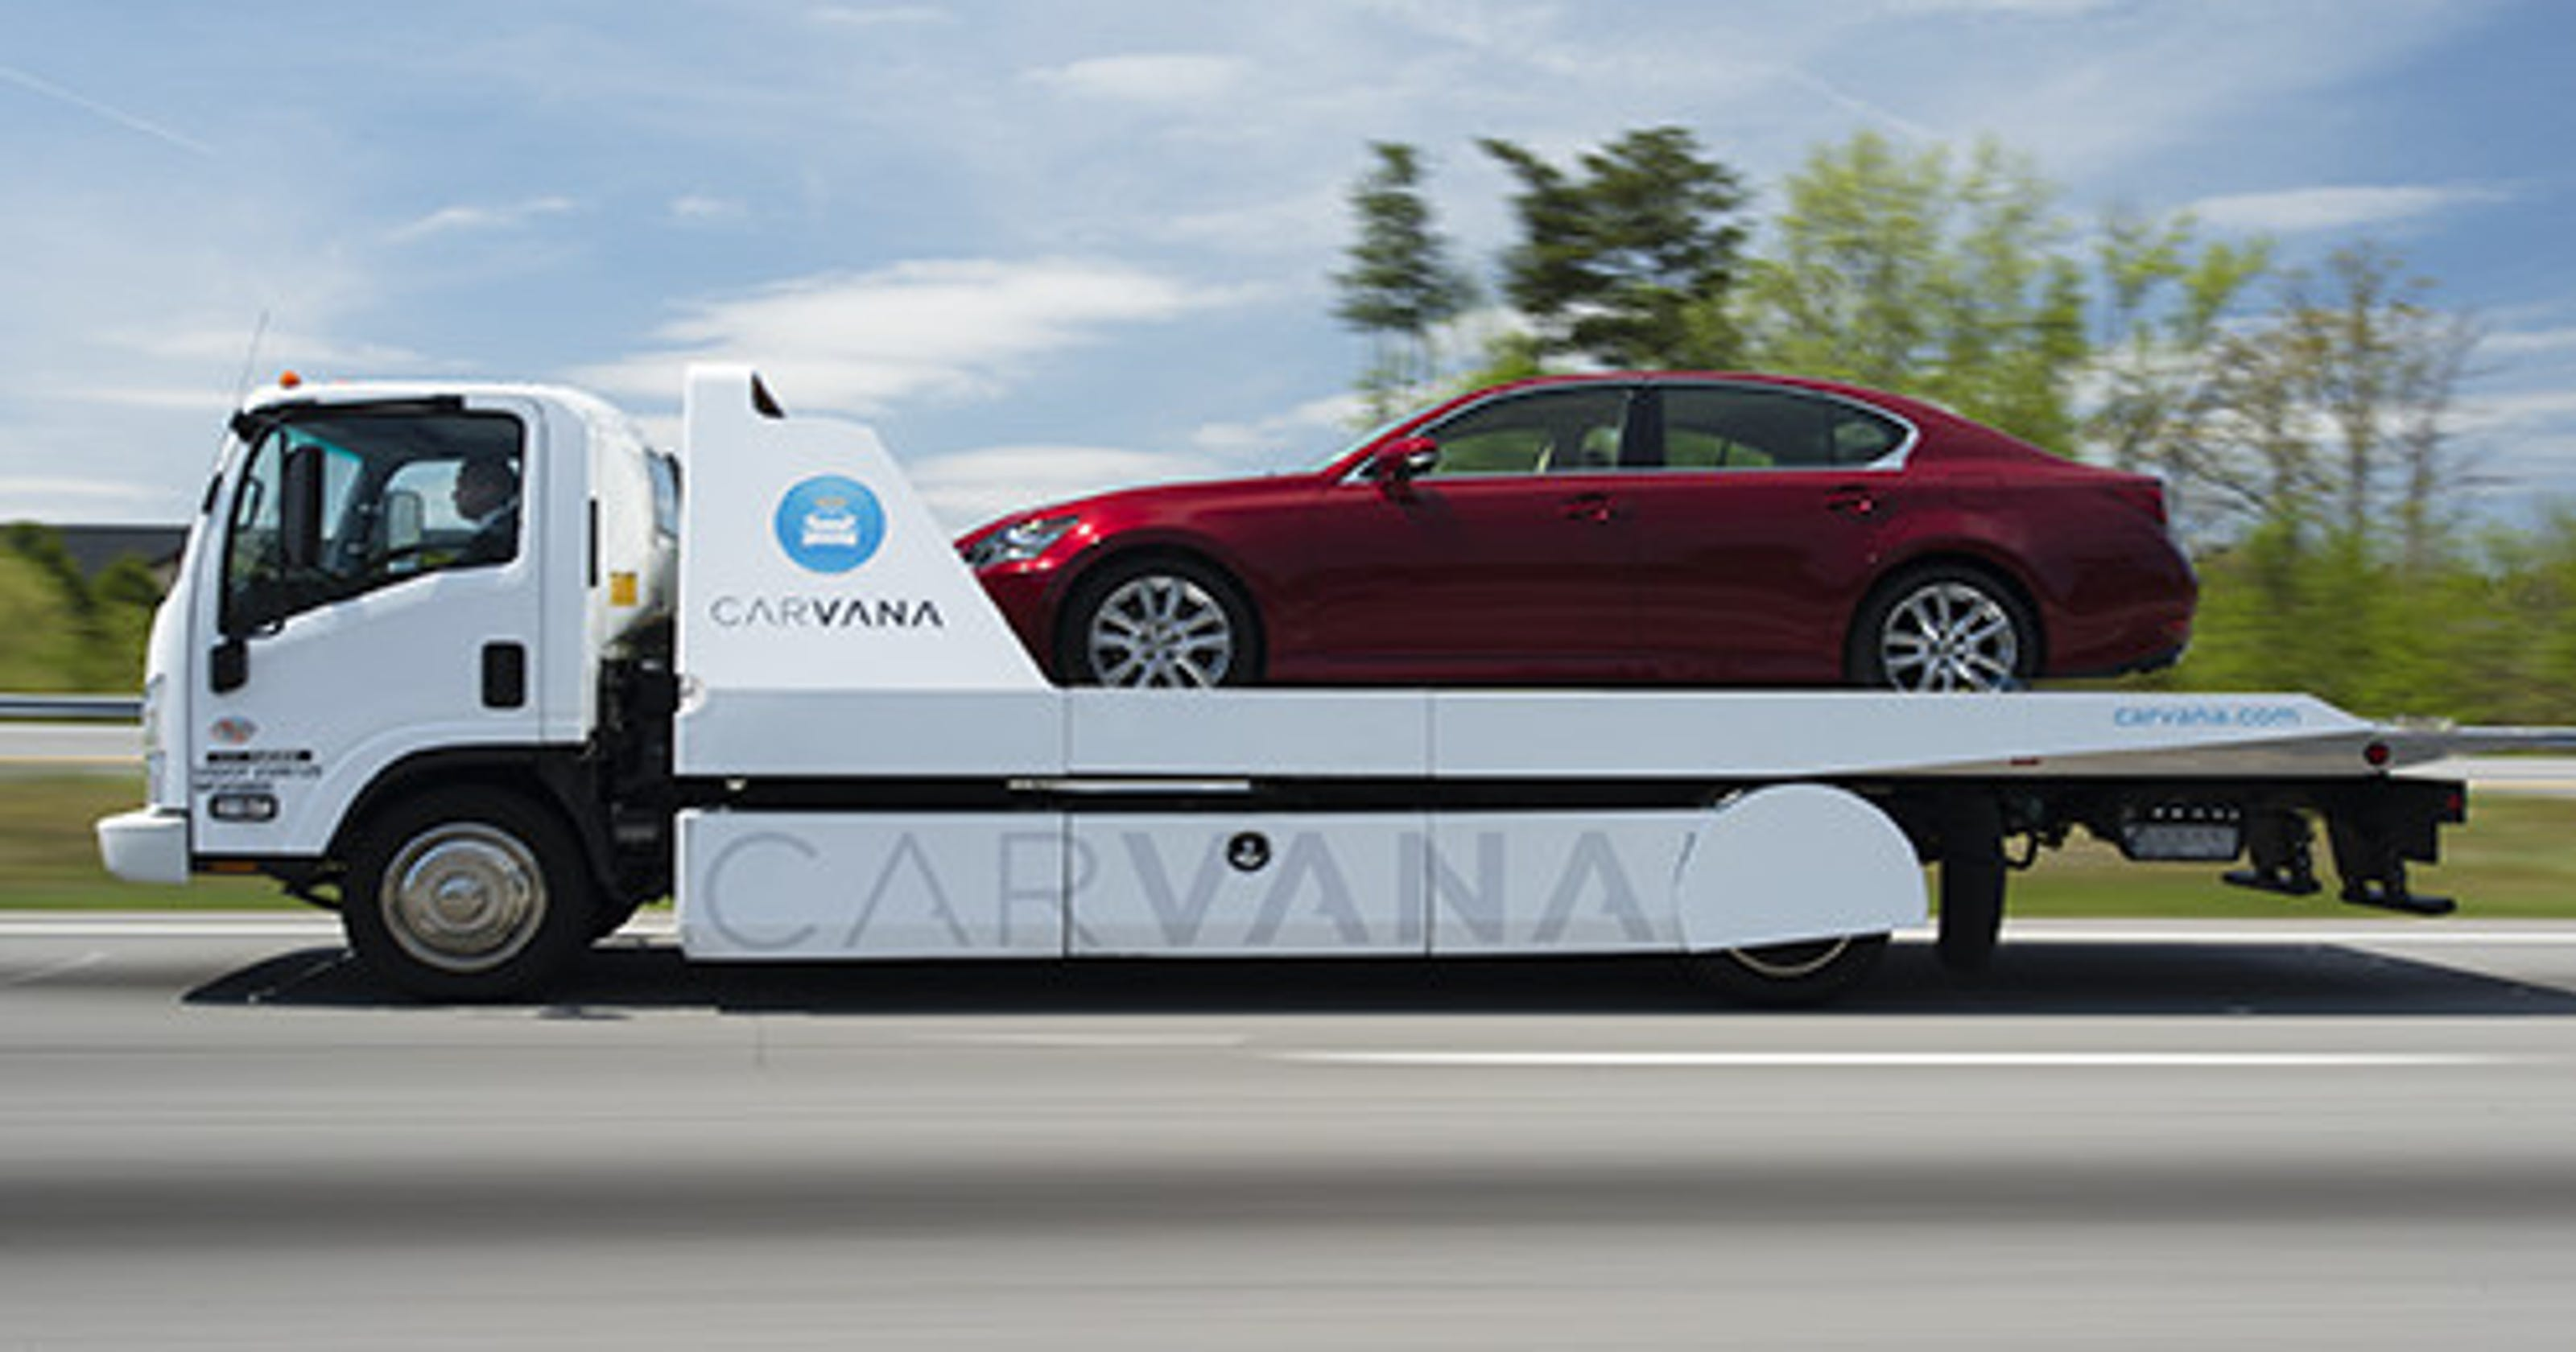 South Plainfield may host Carvana online pre-owned vehicle